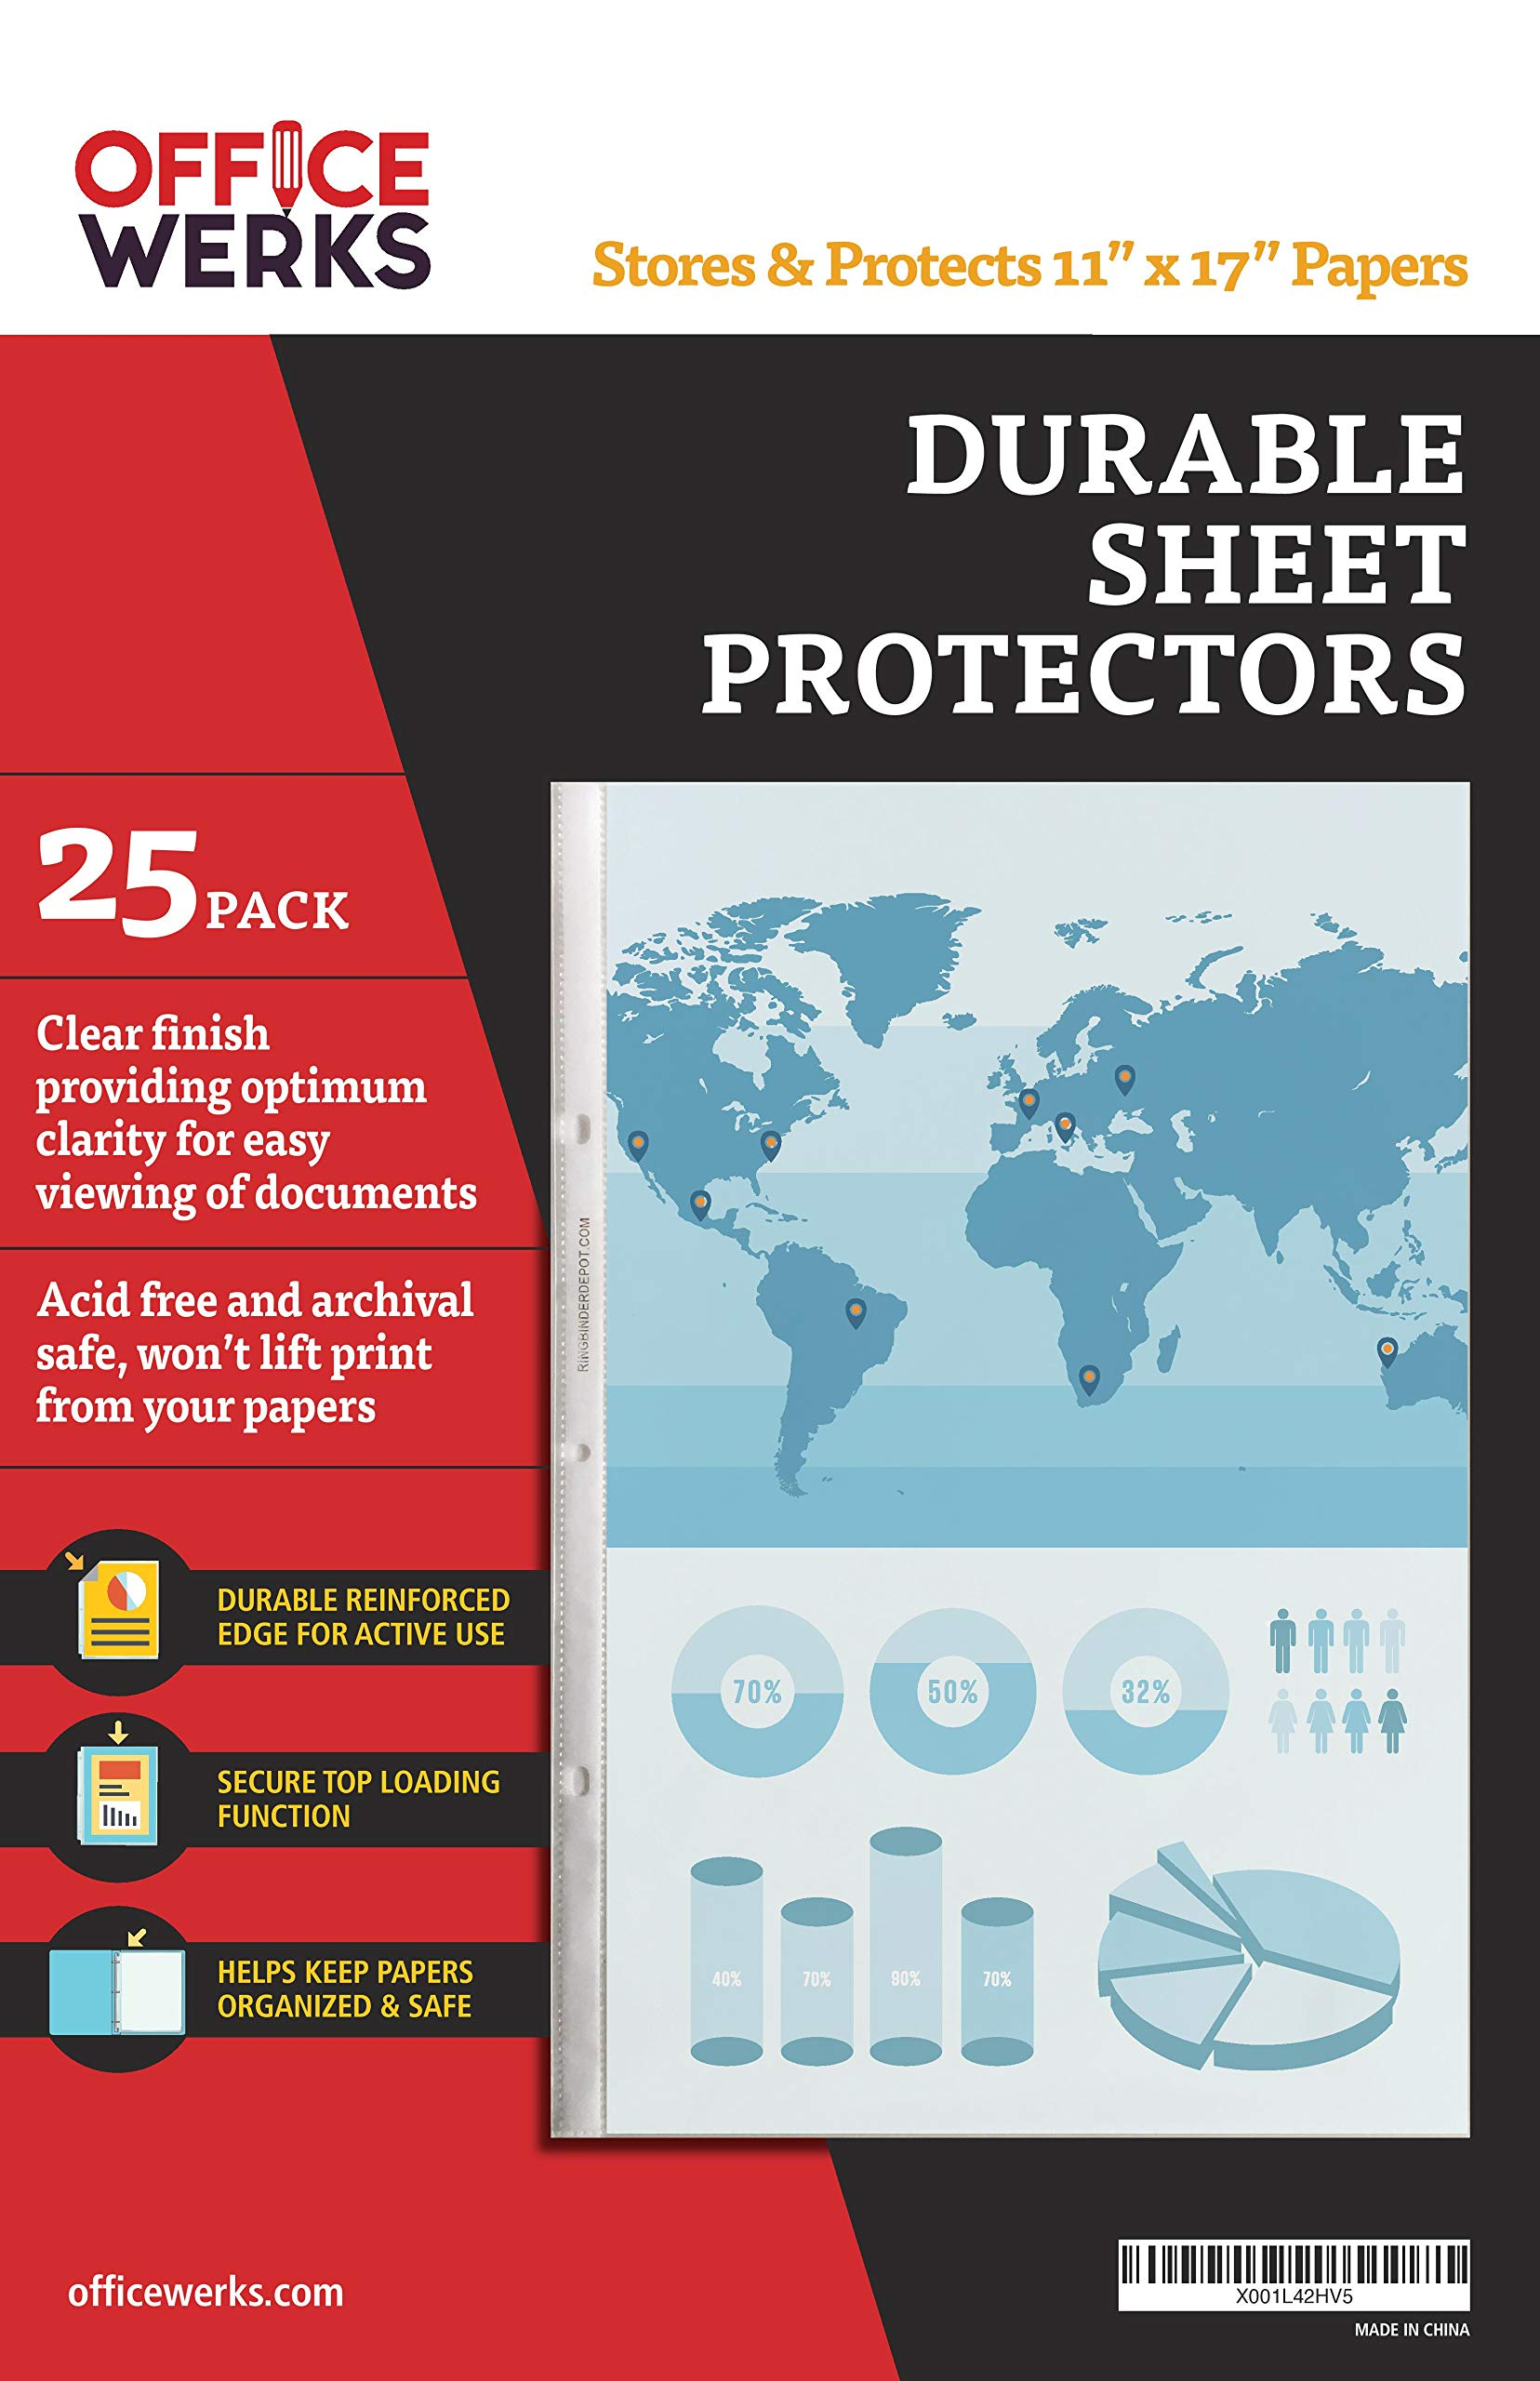 11 x 17 Sheet Protectors, Portrait View,25 Pack, Top Loading, Protect, Store and Display 11X17 Paper, Photographs, Prints, and Documents